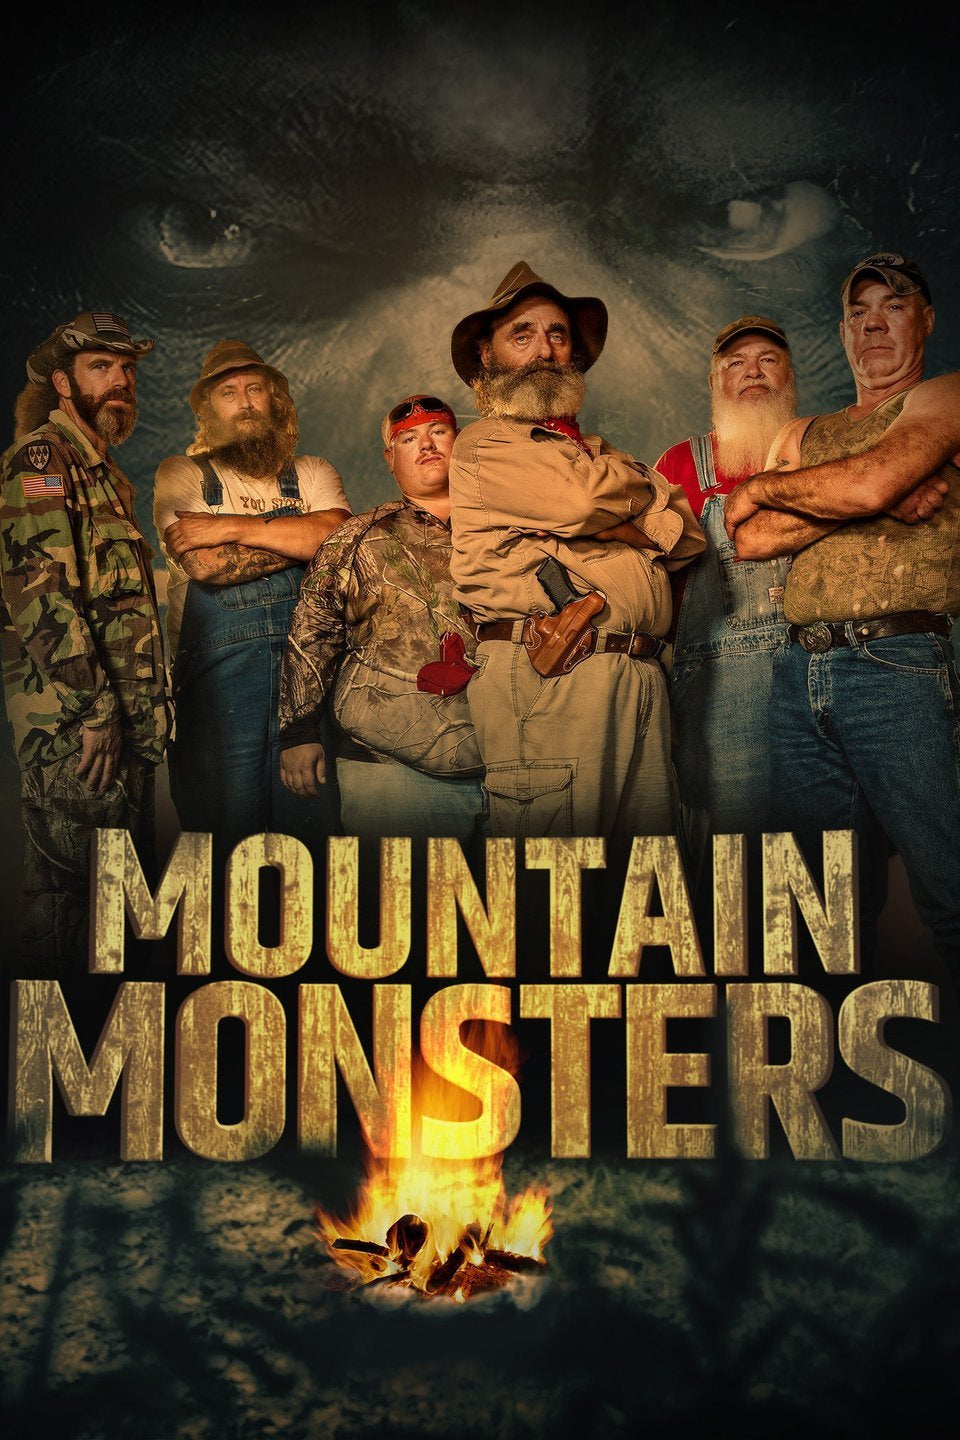 Mountain Monsters Complete Series Dvd (Rarefliks.com)